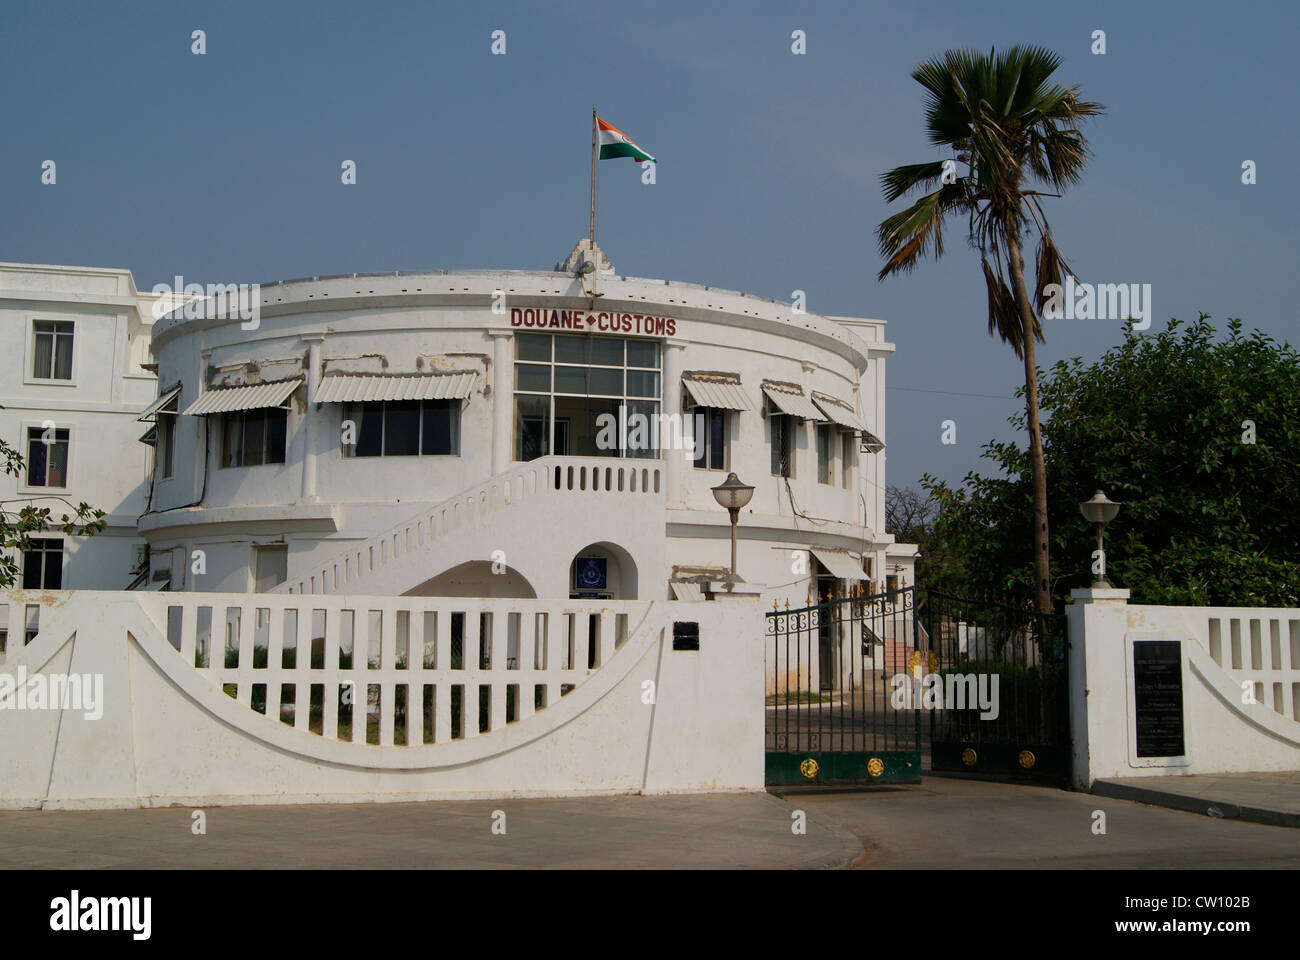 Douane Customs office Building built by French Pondicherry